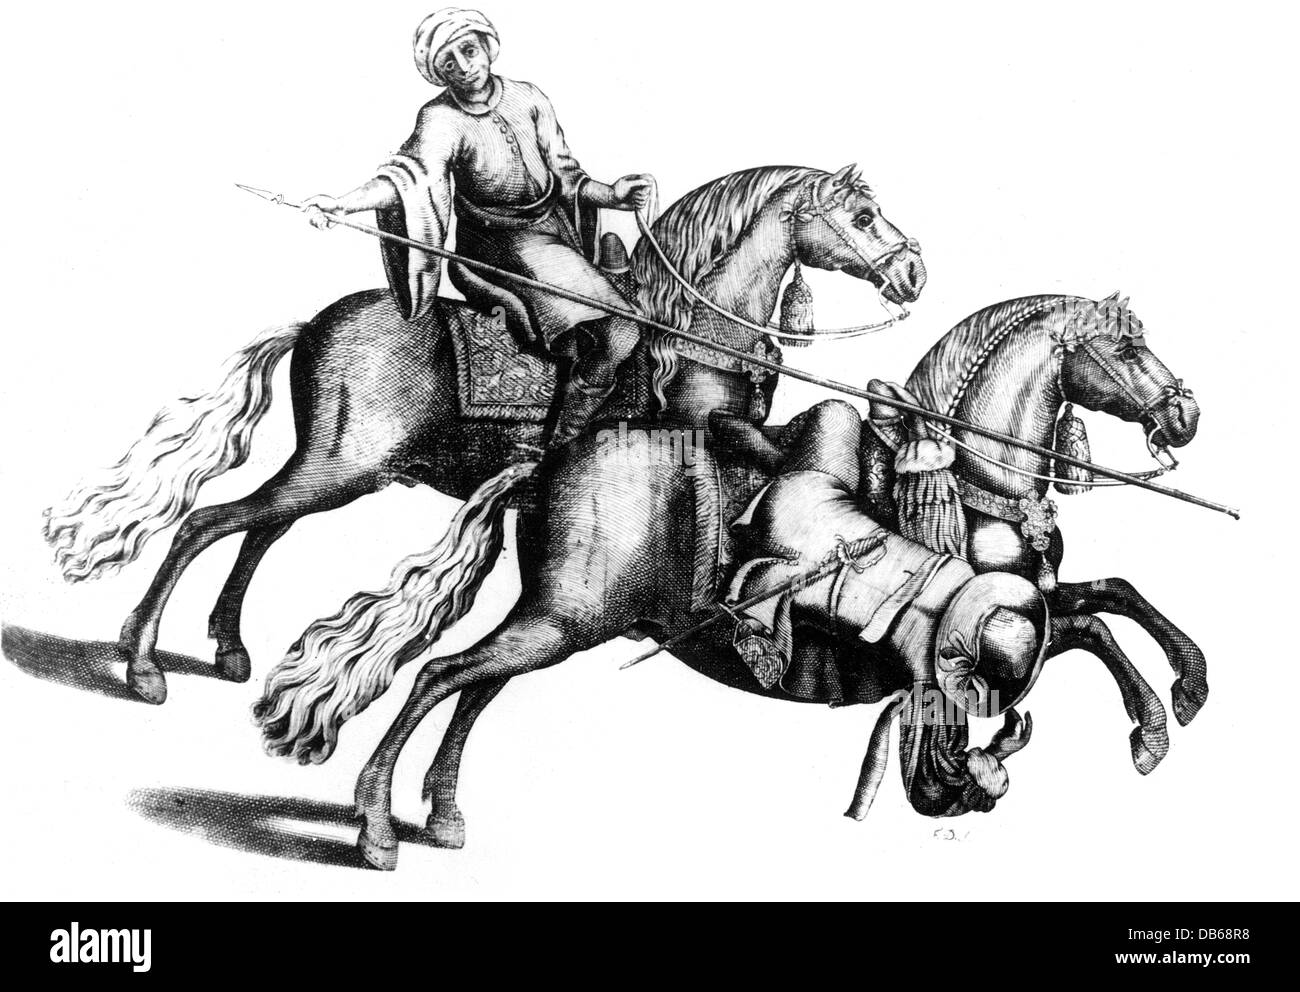 military, cavalry, skill on horseback, rider avoiding a lance thrust, copper engraving, from 'Arte da Cavalleria', - Stock Image